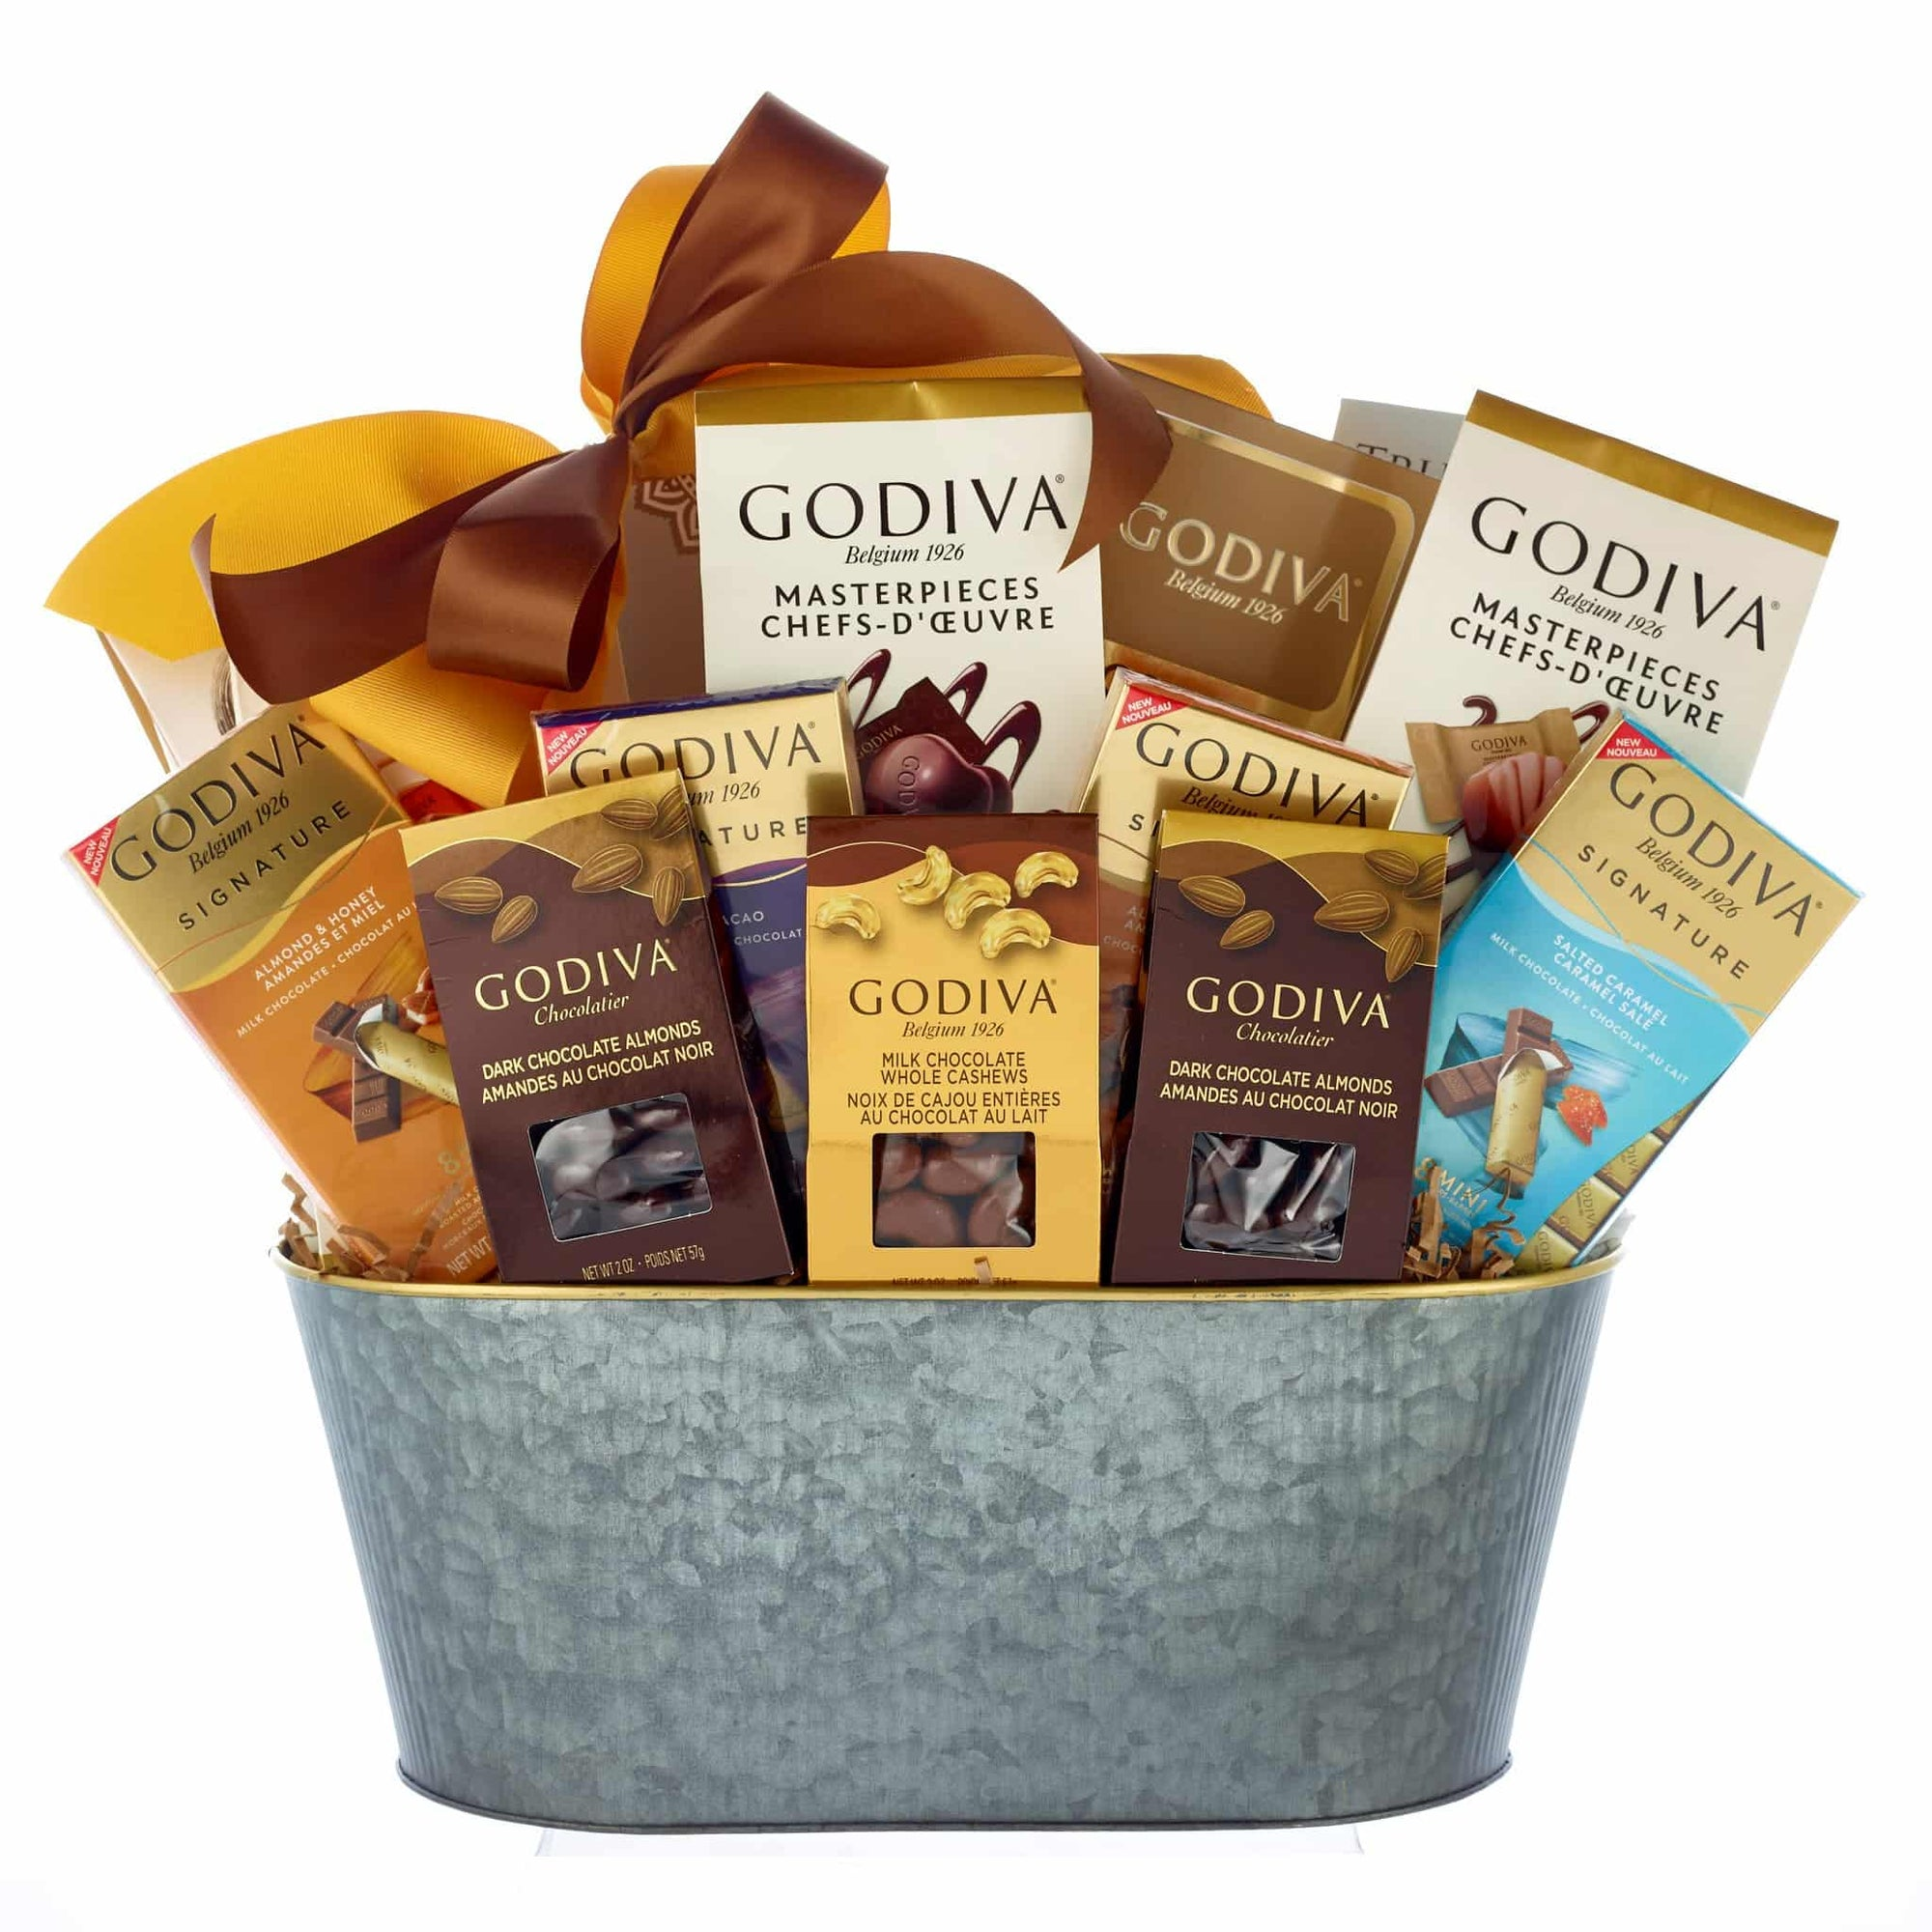 Premium Godiva chocolates for all occasions.